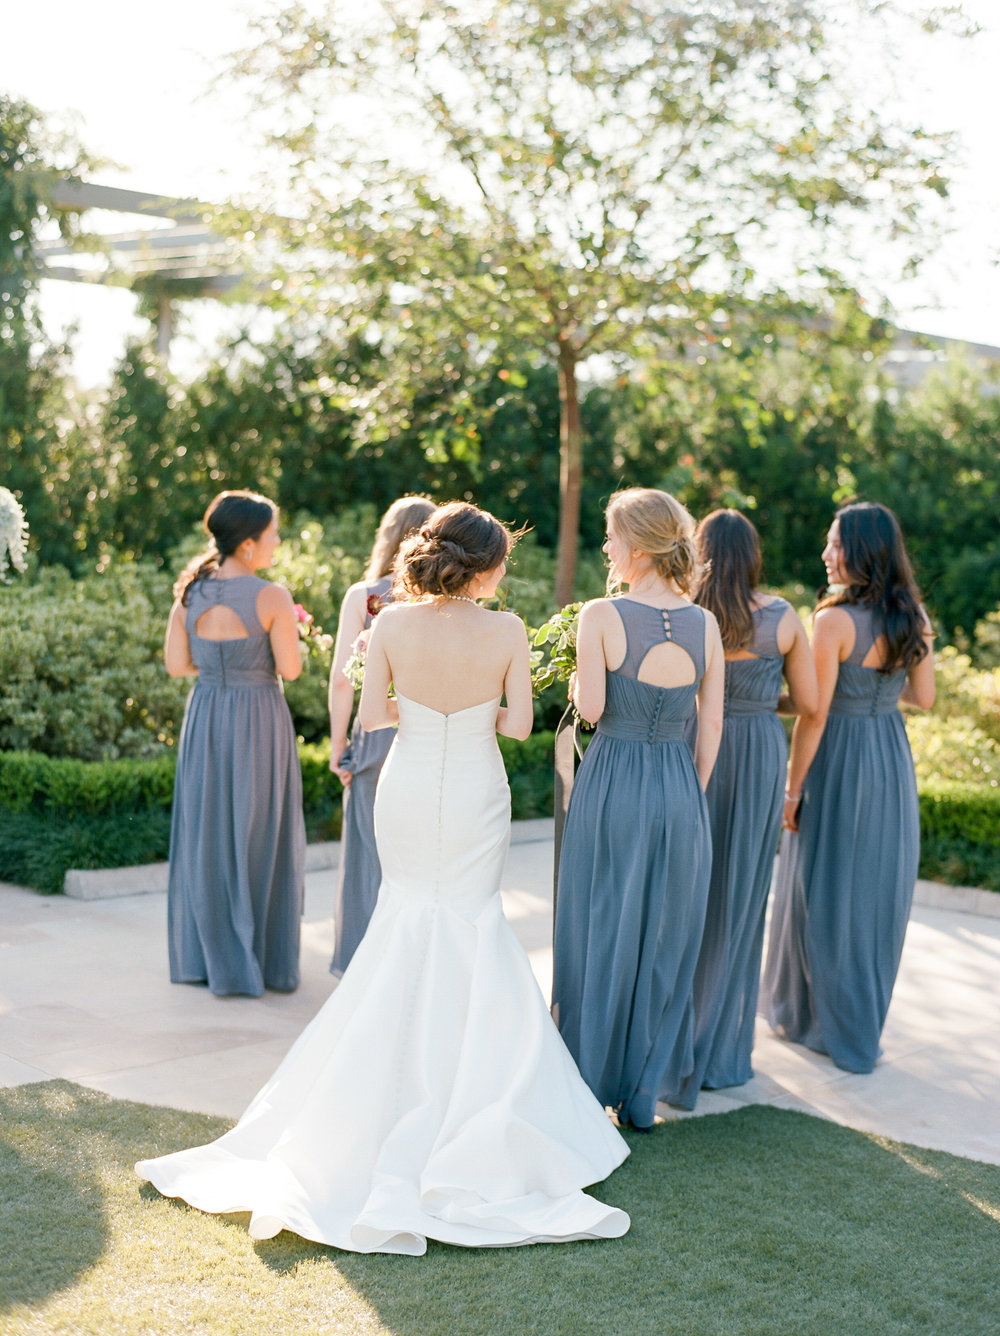 The-Knot-Texas-Magazine-Wedding-Top-Best-Houston-Wedding-Photographer-Fine-Art-Film-Dana-Fernandez-Photography-114.jpg